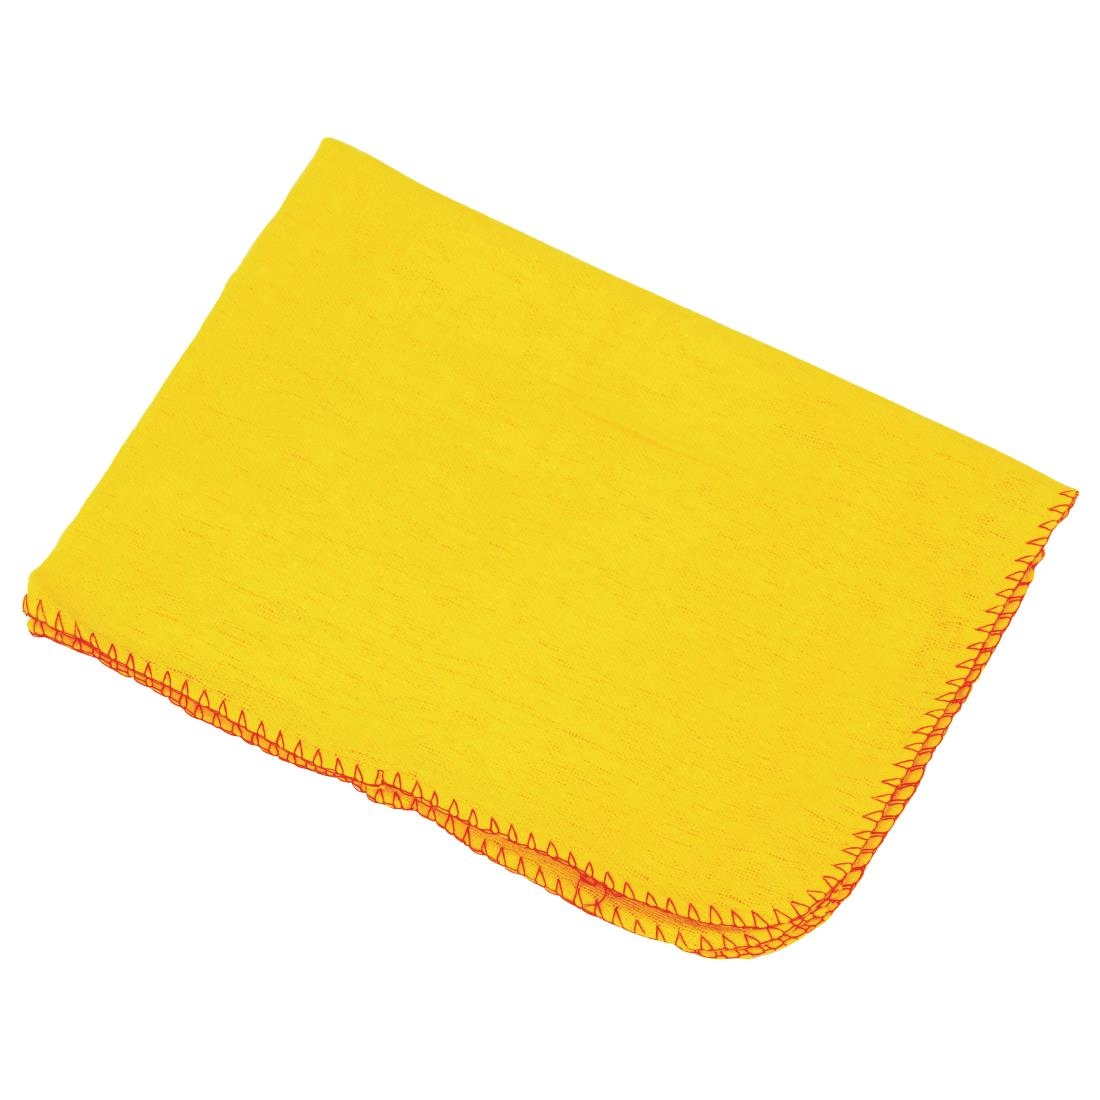 A yellow cloth duster to use as a sensory prop.